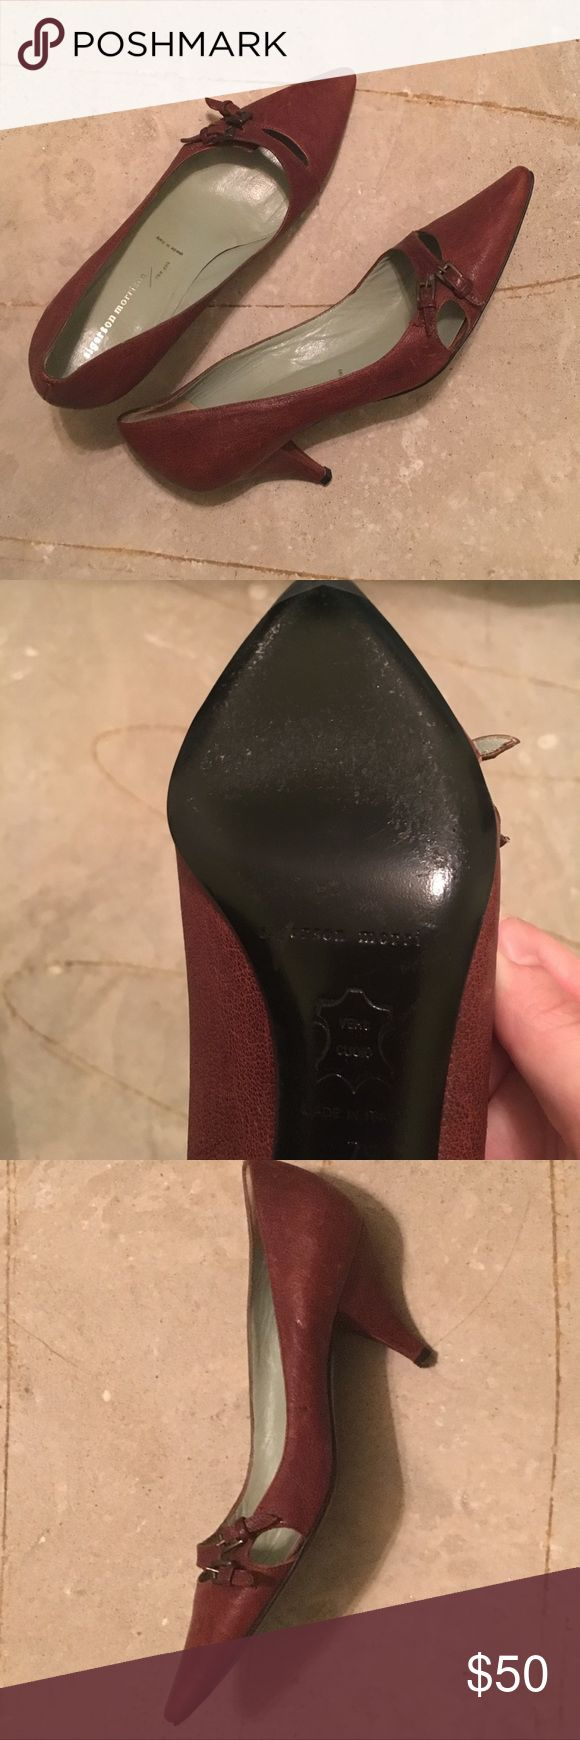 Sigerson Morrison Brown Retro Leather Heels/Pumps Sigerson Morrison size 7 heels. Brown leather exterior, black leather soles. Buckle detail, pointed toe. Sigerson Morrison Shoes Heels